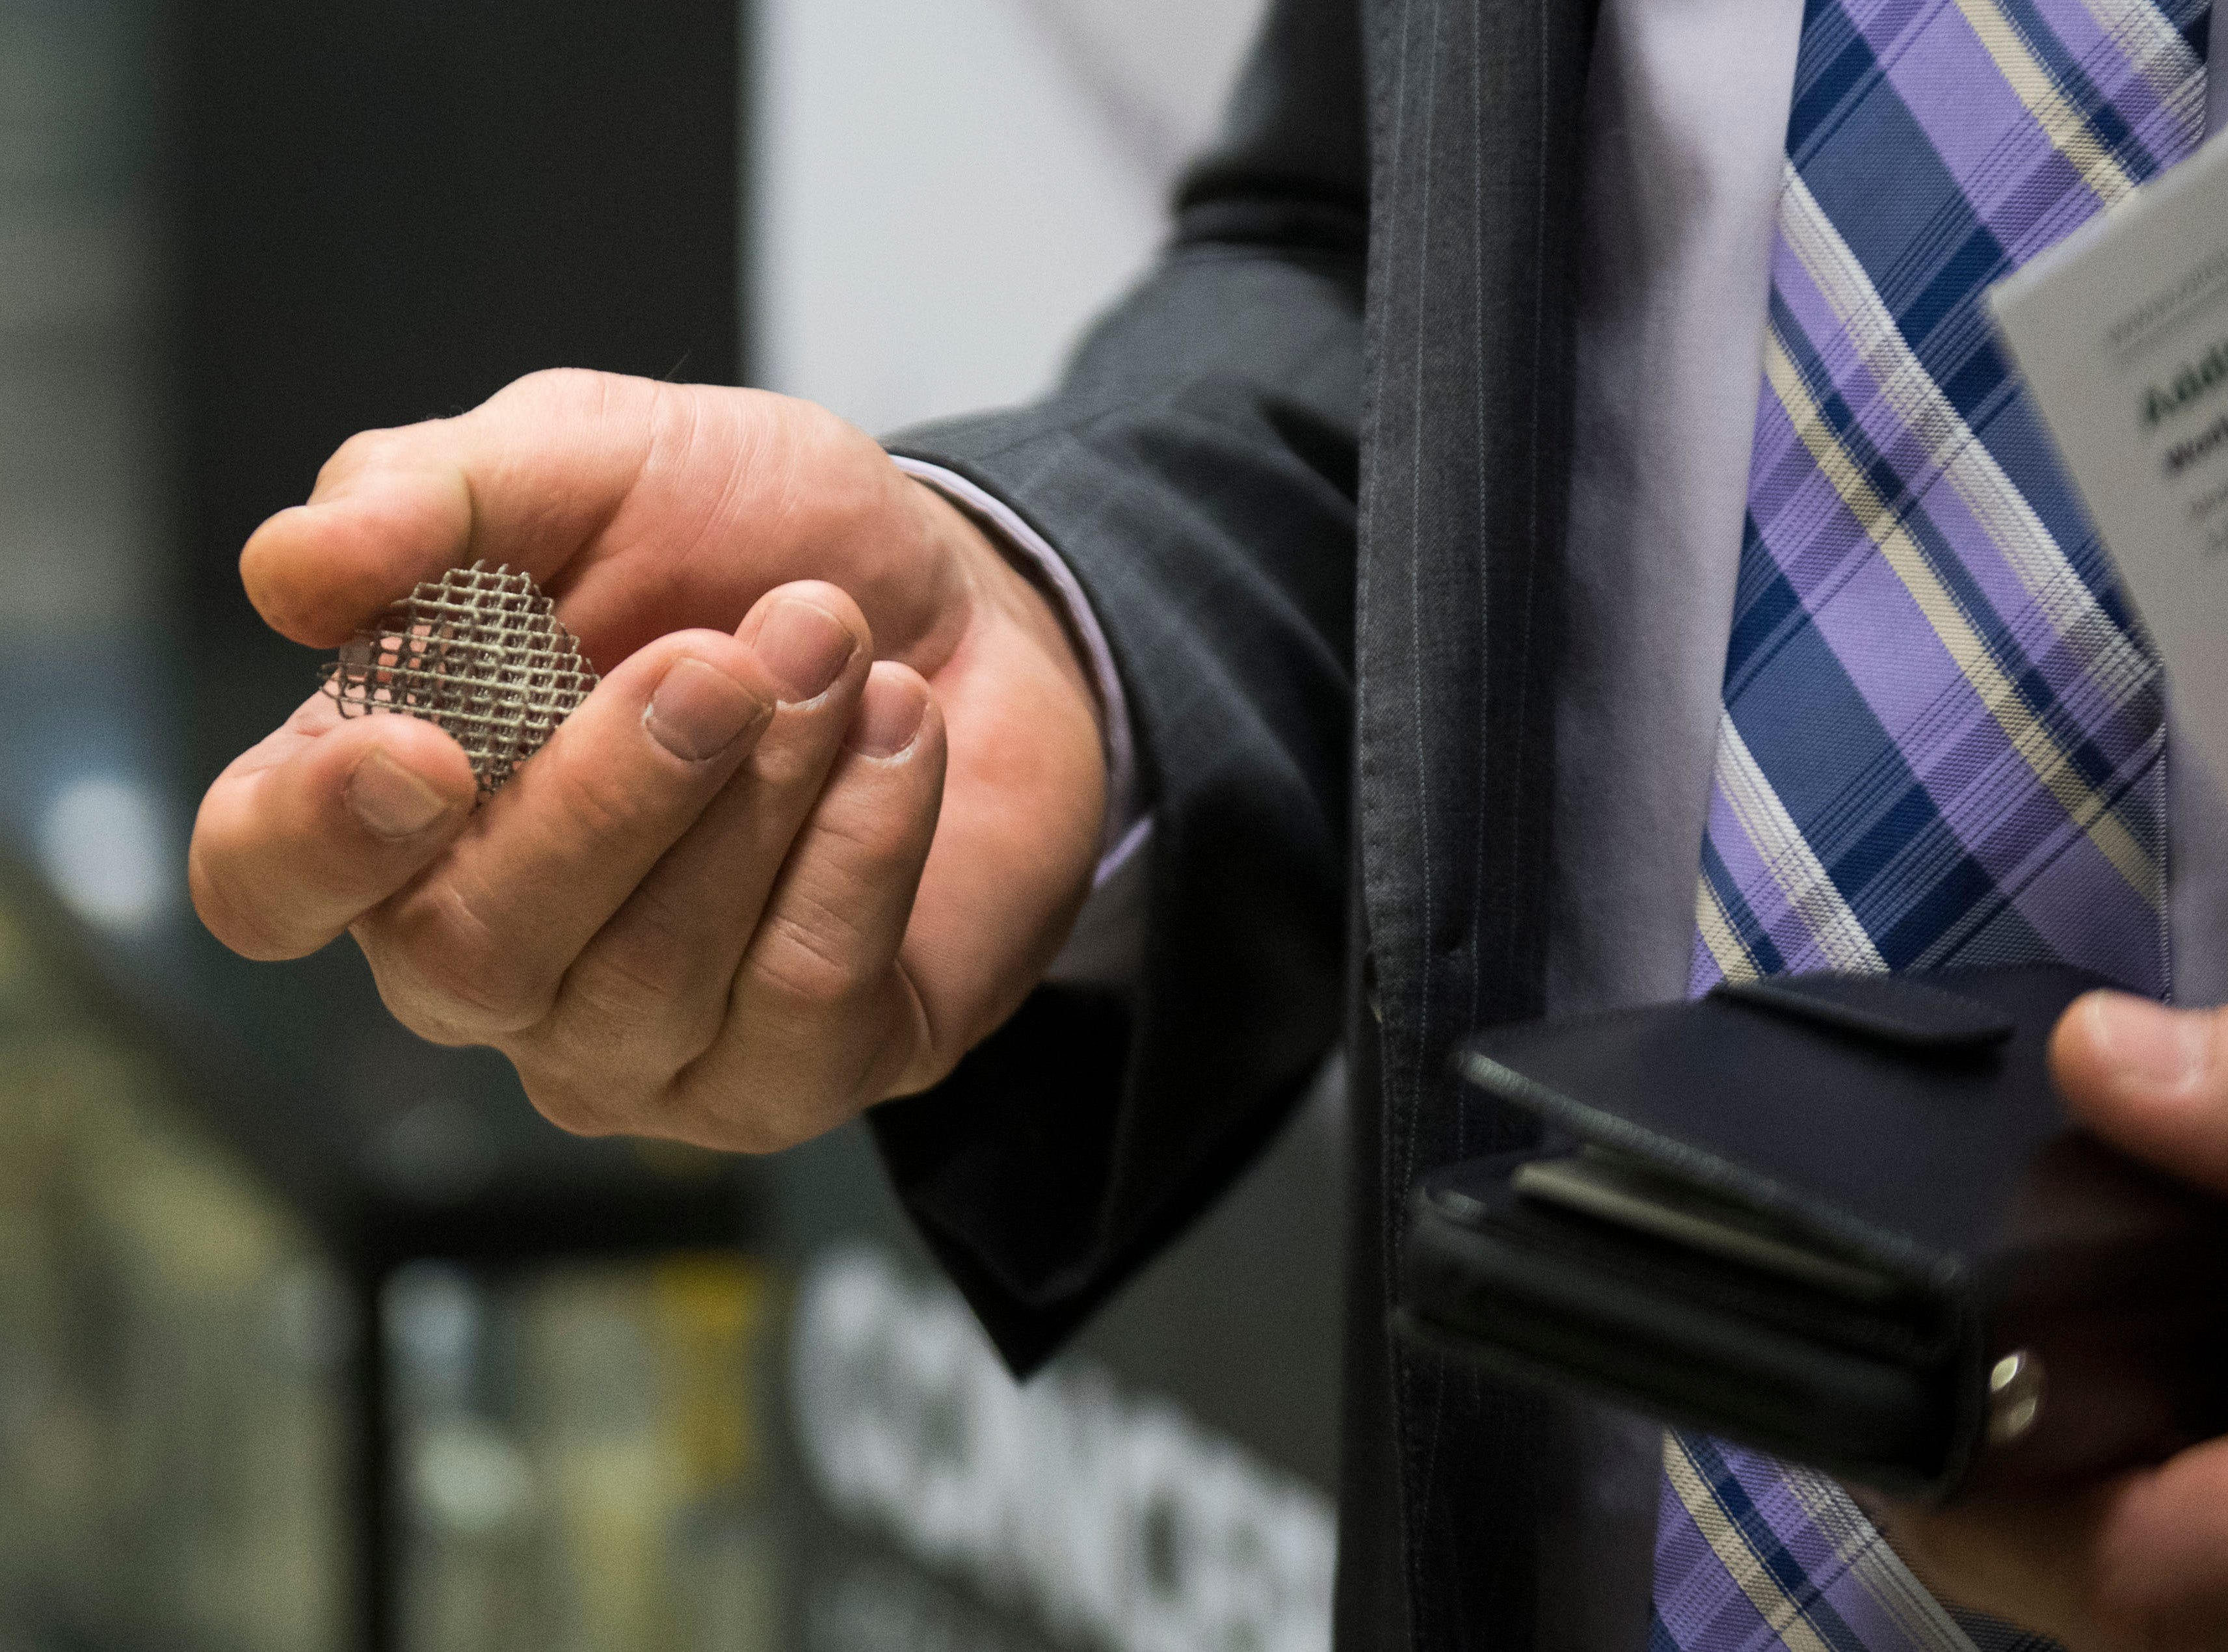 The Knox County Mayor Glenn Jacobs holds a 3d printed item at Oak Ridge National Laboratory's Manufacturing Demonstration Facility in Knoxville Tuesday, Dec. 4, 2018.